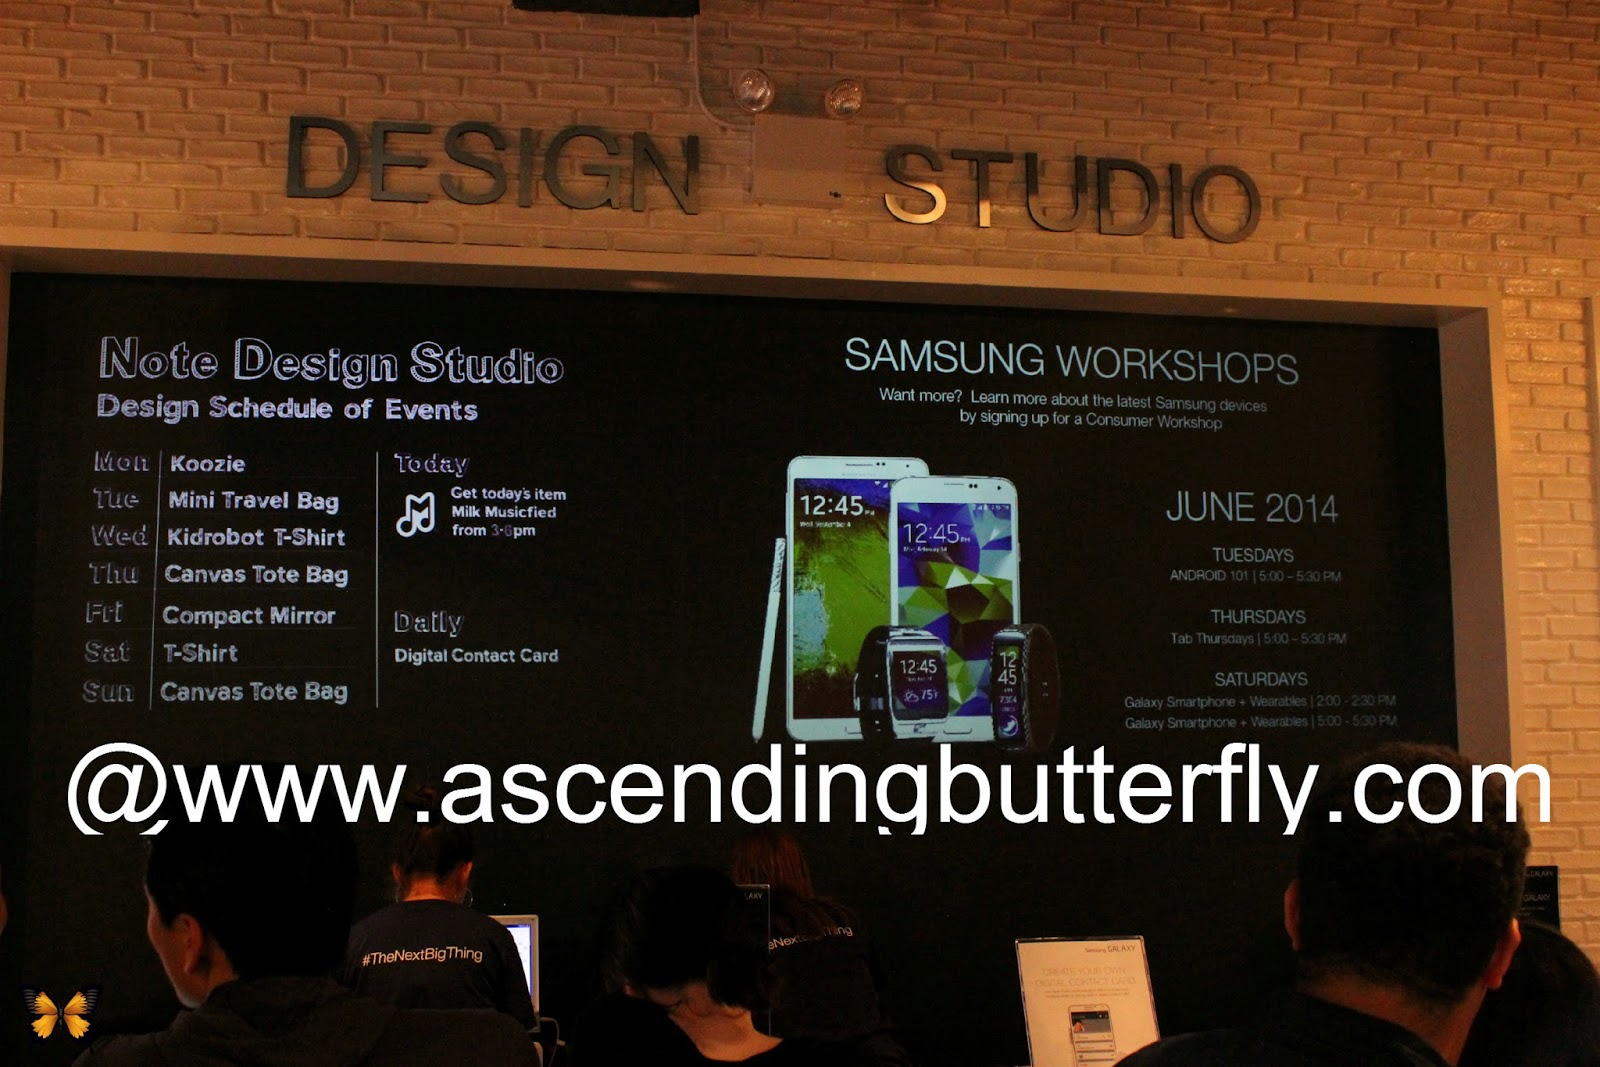 Design Studio at the SoHo Samsung Galaxy Studio